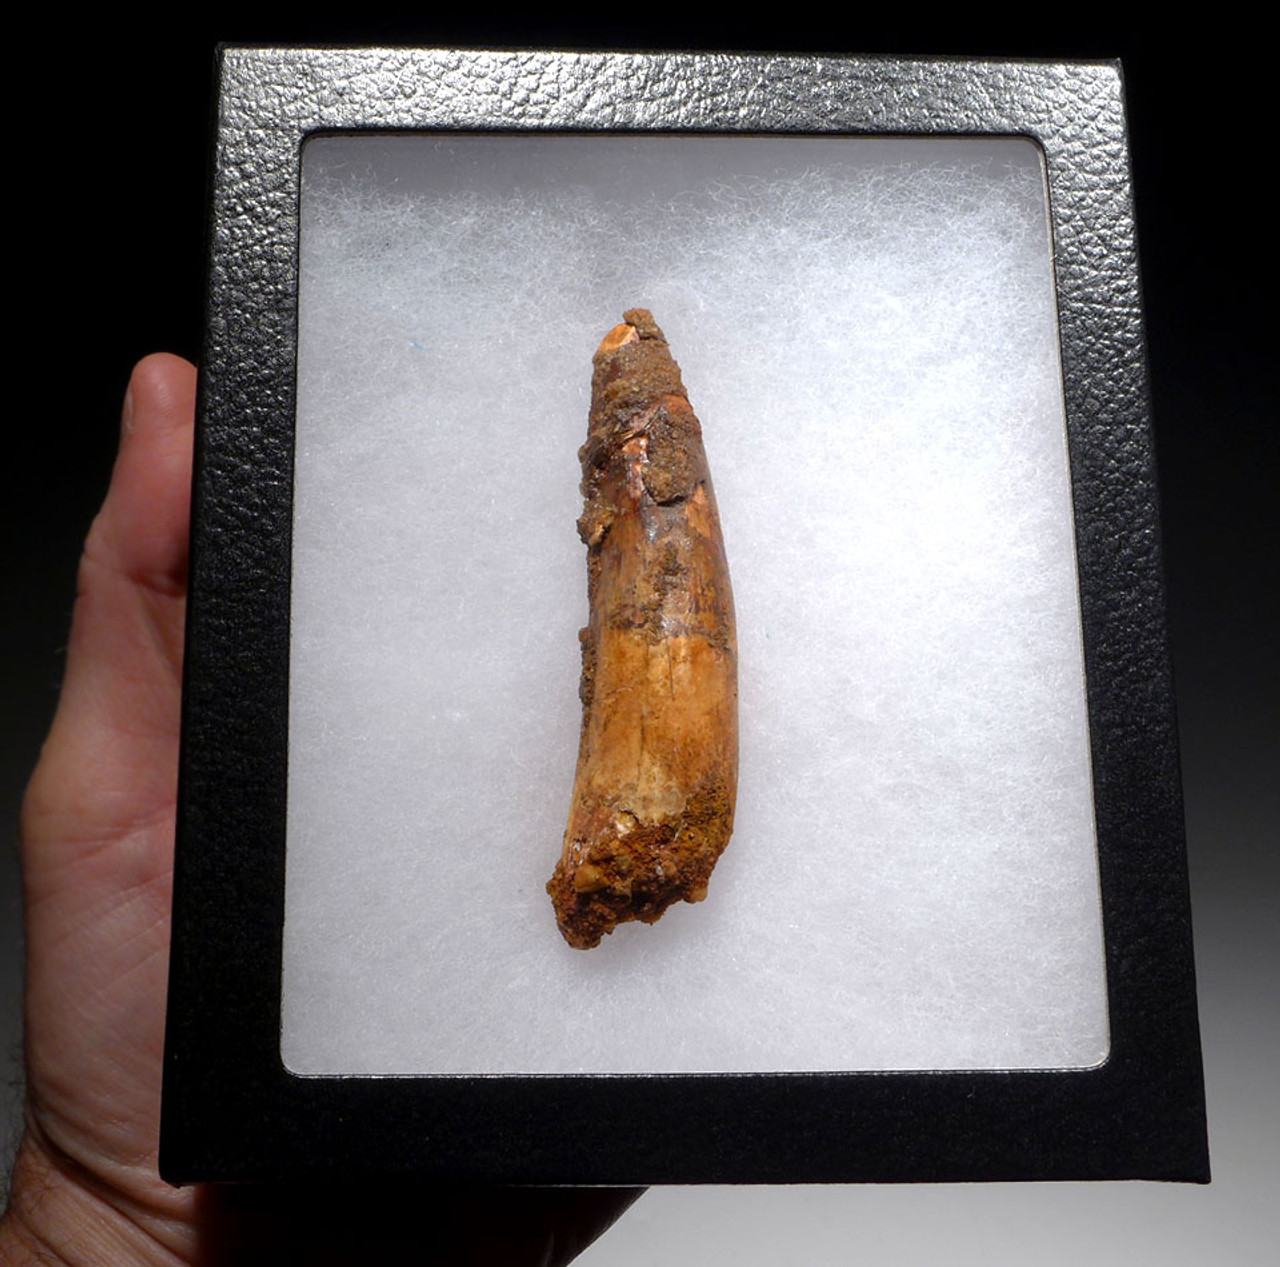 VERY LARGE AFFORDABLE 3.5 INCH SPINOSAURUS DINOSAUR FOSSIL TOOTH *DT5-433